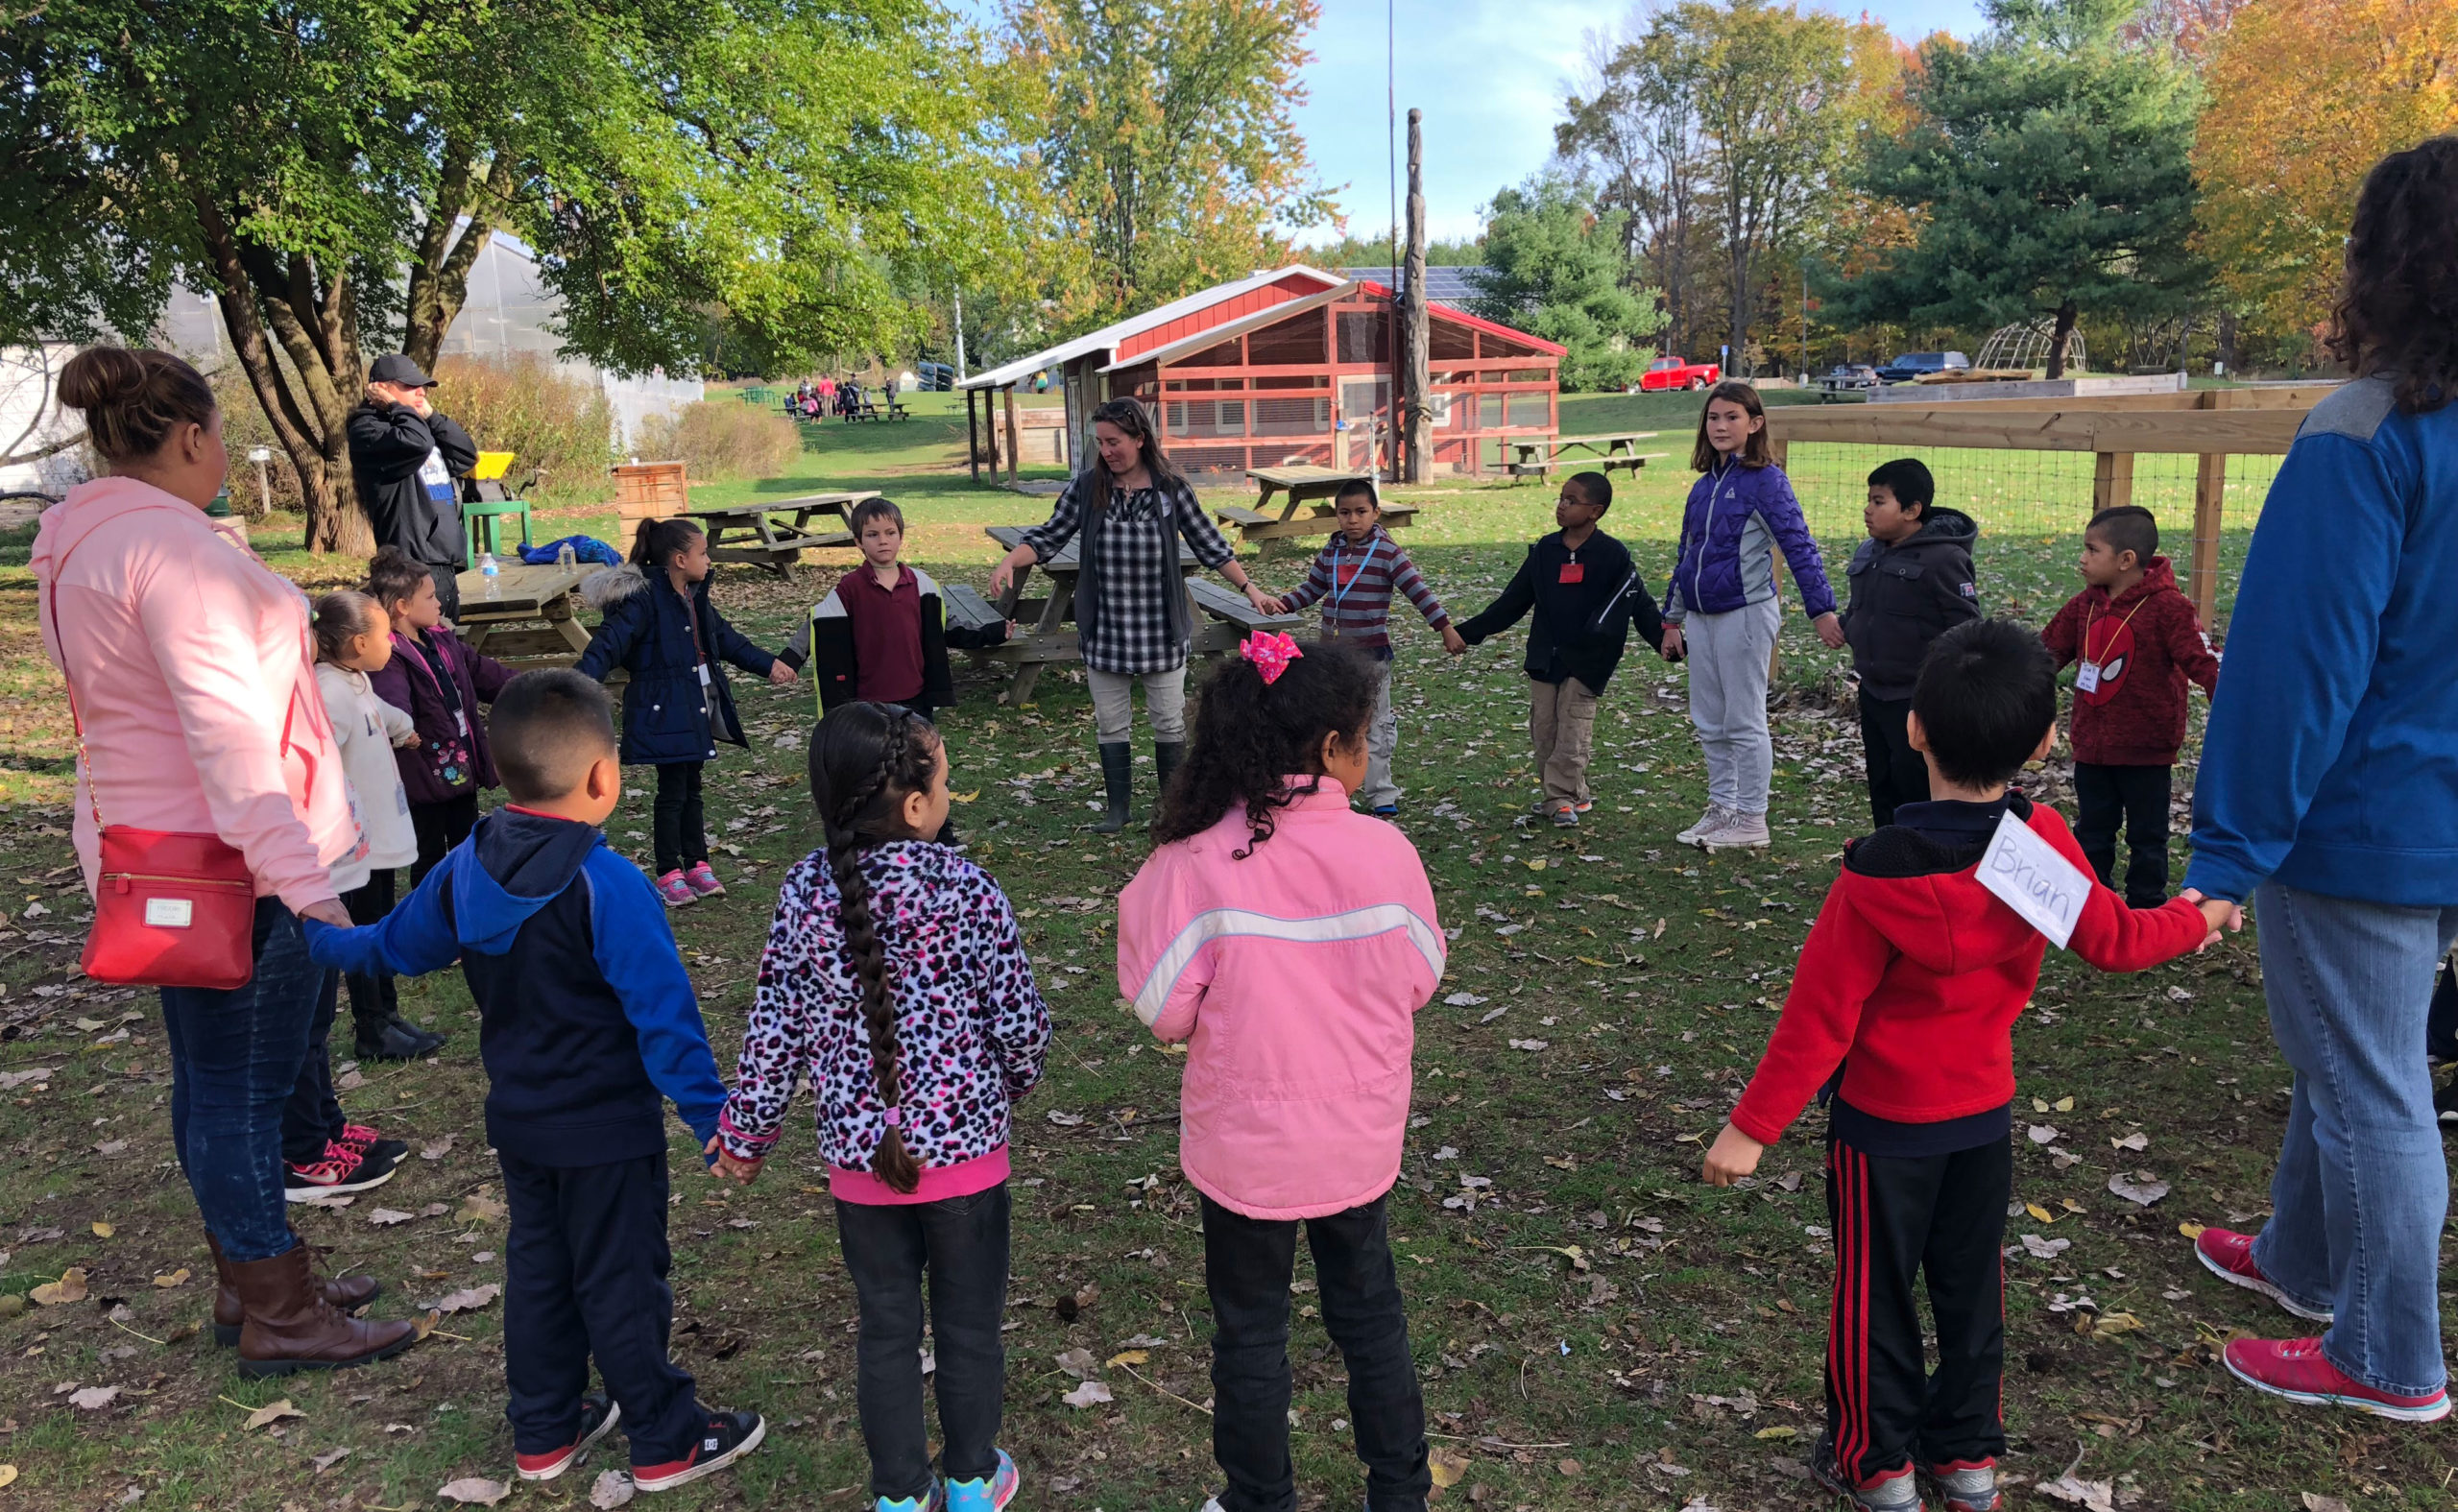 Students learning about nature at Blandford